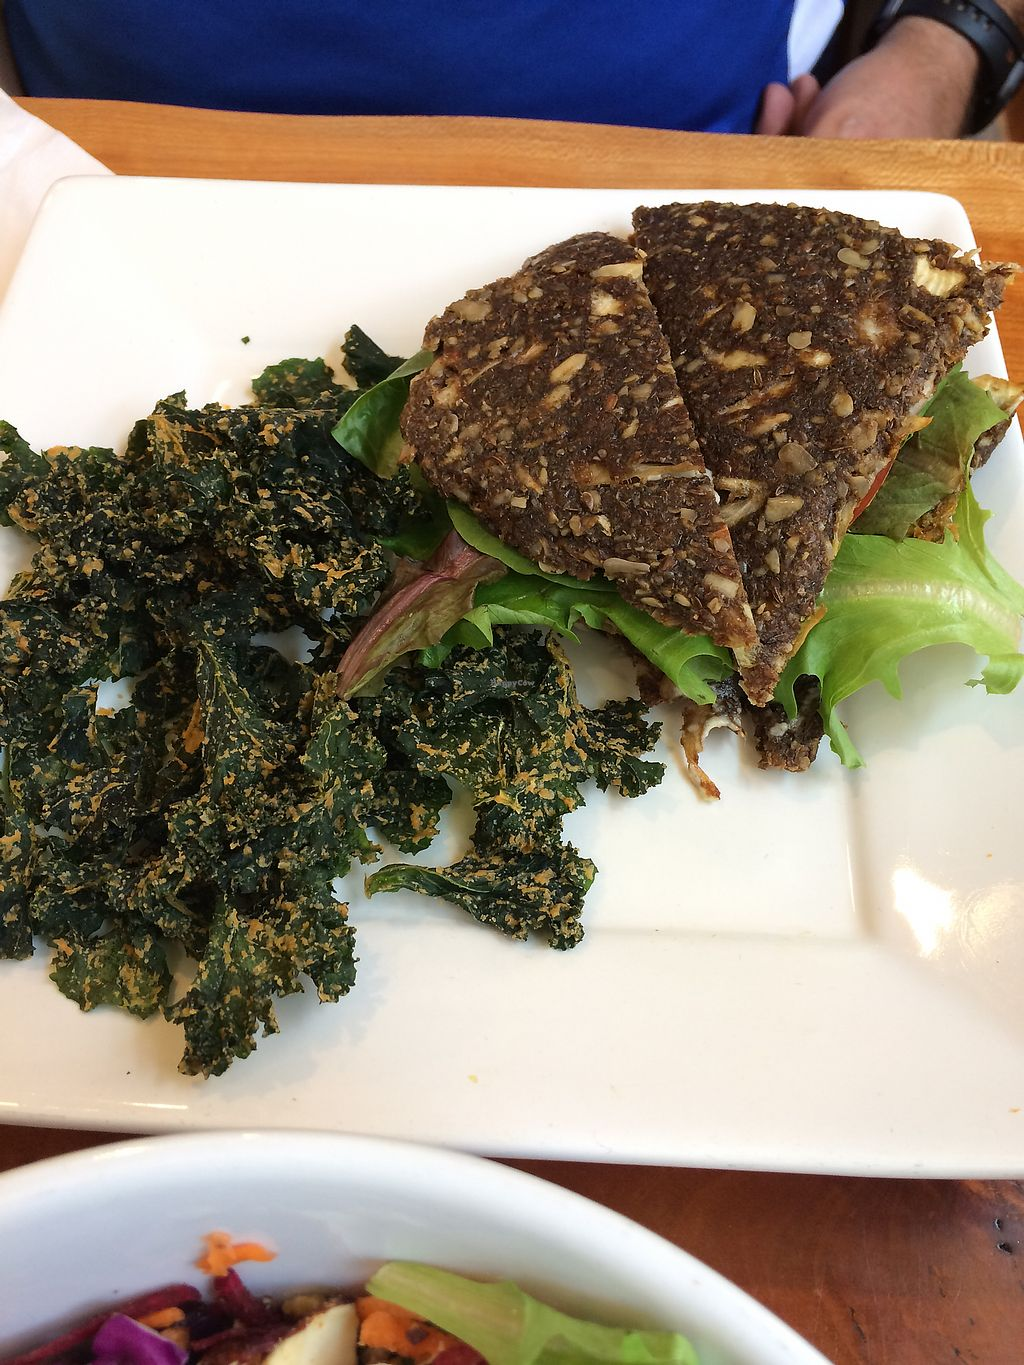 """Photo of Right Path Organic Cafe  by <a href=""""/members/profile/Indyk"""">Indyk</a> <br/>Sun burger on onion bread with kale chips <br/> July 22, 2017  - <a href='/contact/abuse/image/65514/283266'>Report</a>"""